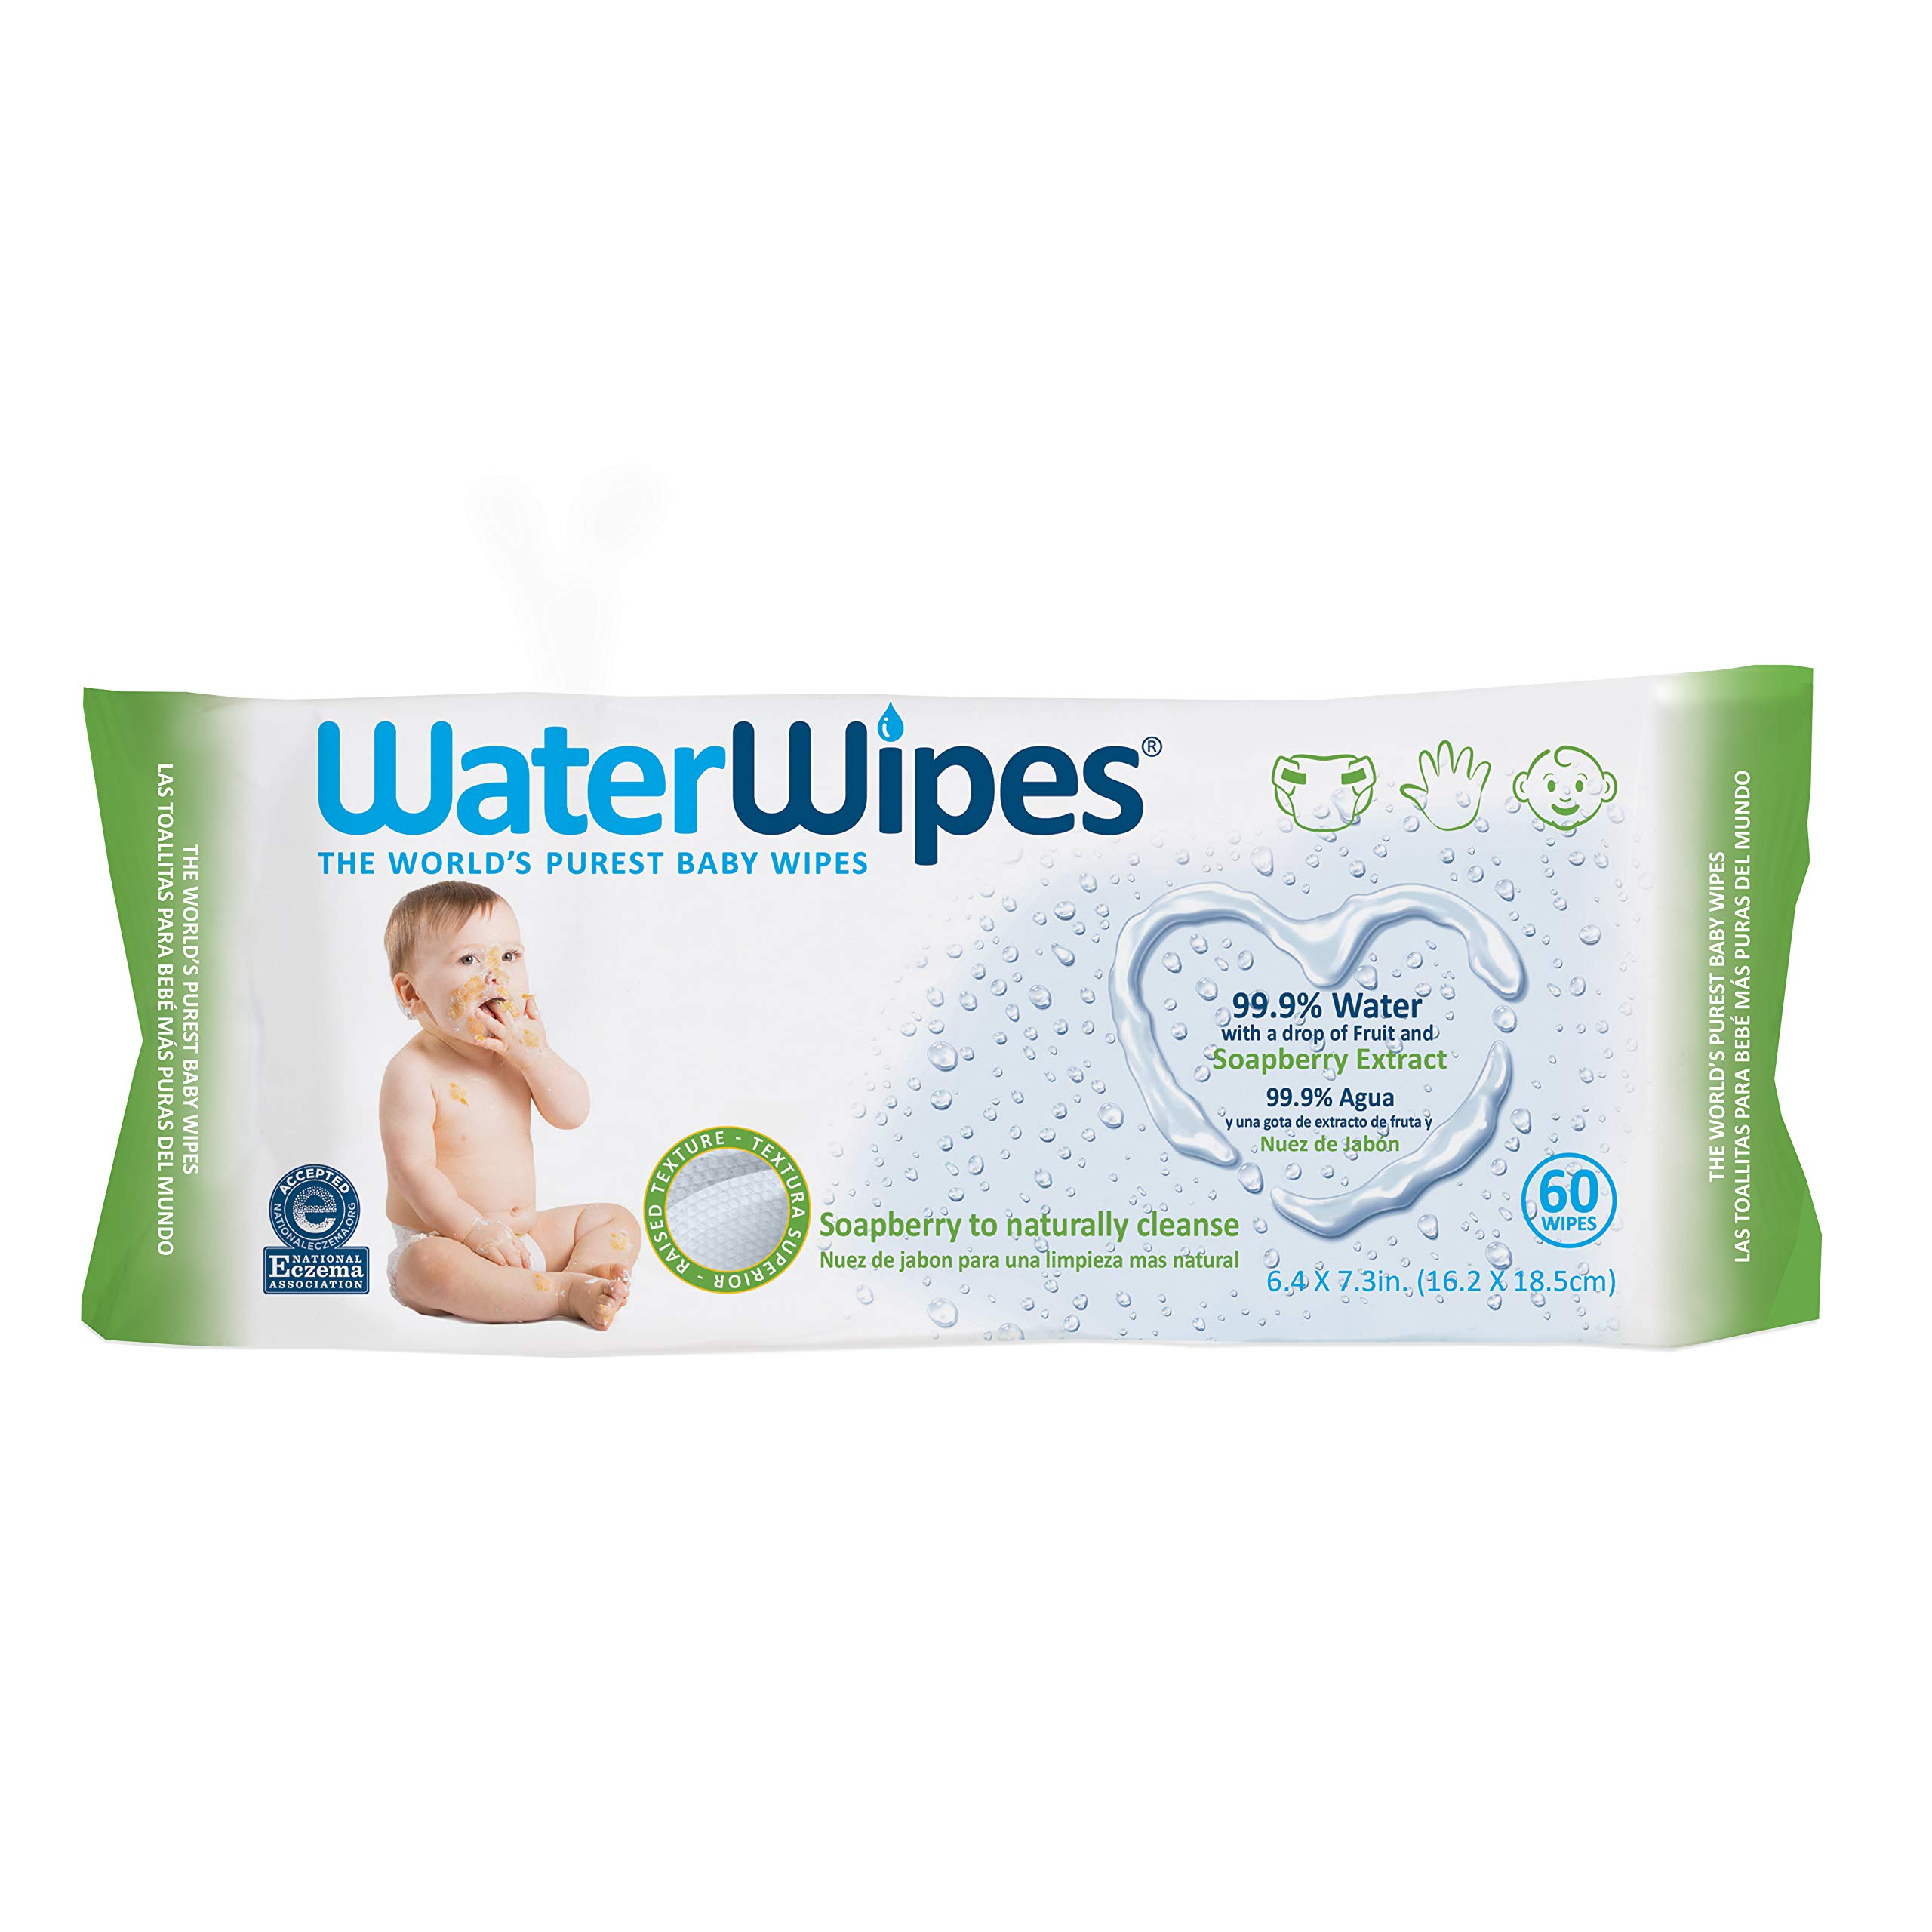 Waterwipes Hand Face Baby Wipes With Soapberry, 540 wipes (9 packs × 60 wipes)10.6 Pound by WaterWipes